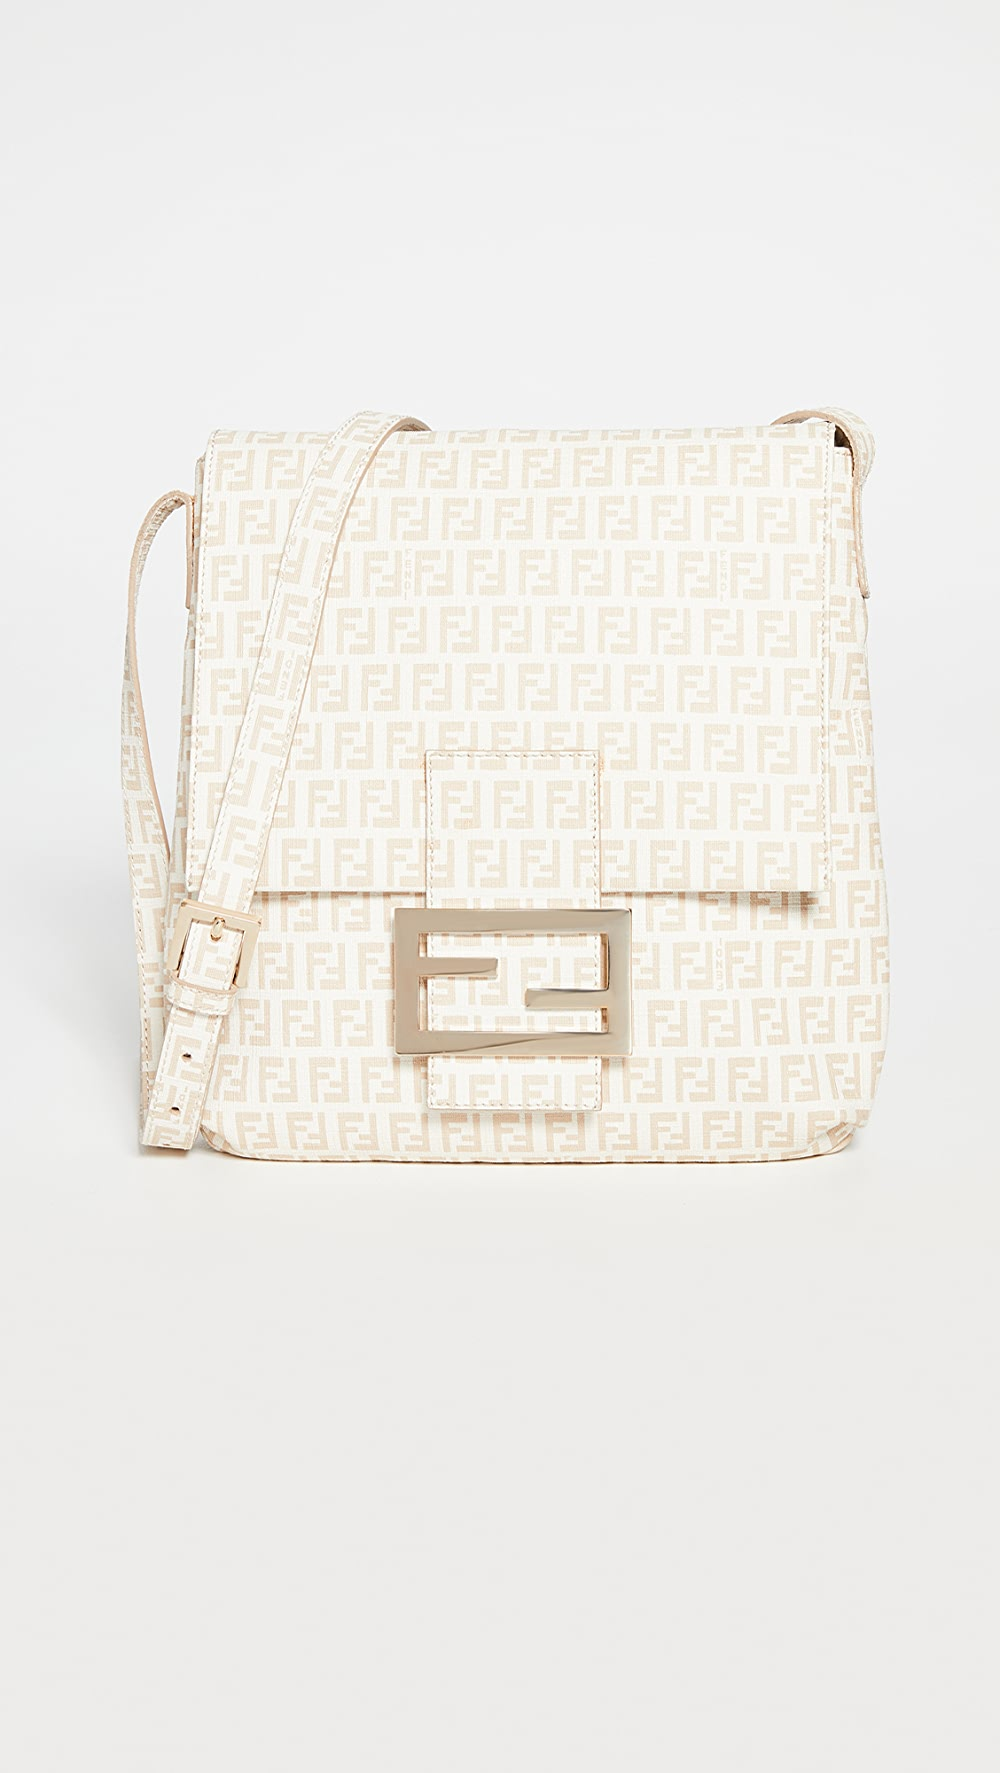 The Best What Goes Around Comes Around - Fendi White Messenger Bag Promoting Health And Curing Diseases